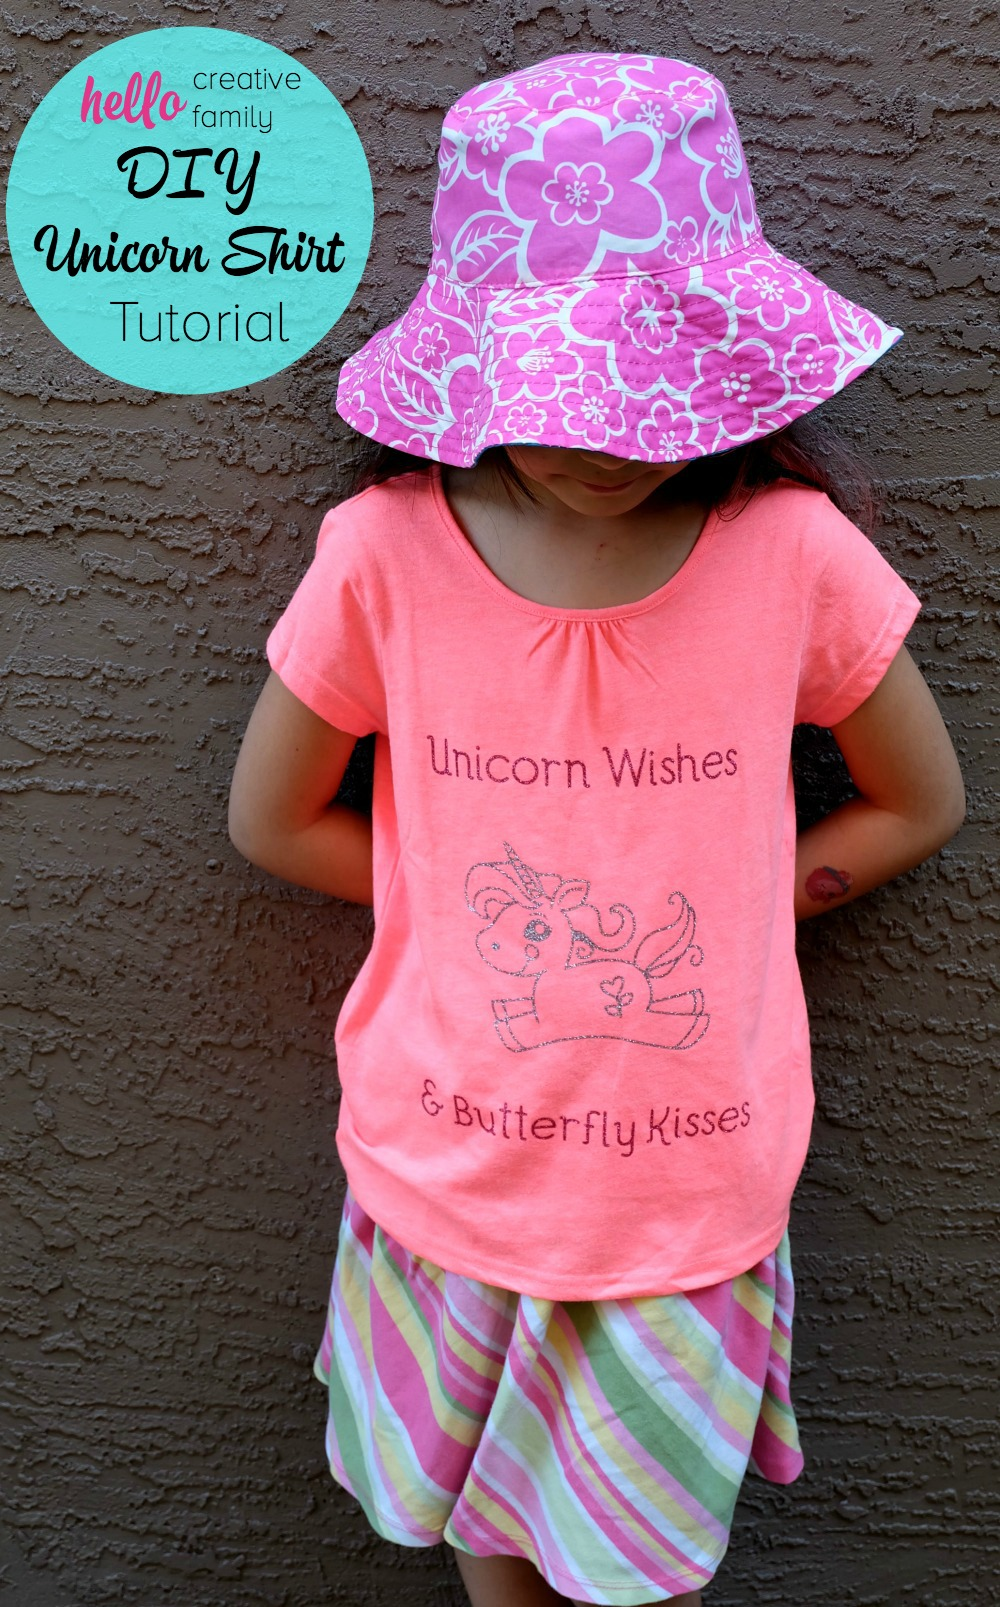 "75+ Magically Inspiring Unicorn Crafts, DIYs, Foods and Gift Ideas: Such an adorable shirt idea! ""Unicorn Wishes and Butterfly Kisses!"" Kids feel extra special when they wear handmade clothing made with love. Learn how to make a DIY Unicorn Shirt with your Cricut Explore. Such a great Cricut project to make cute kids clothing! This would be great for a unicorn themed birthday party!"